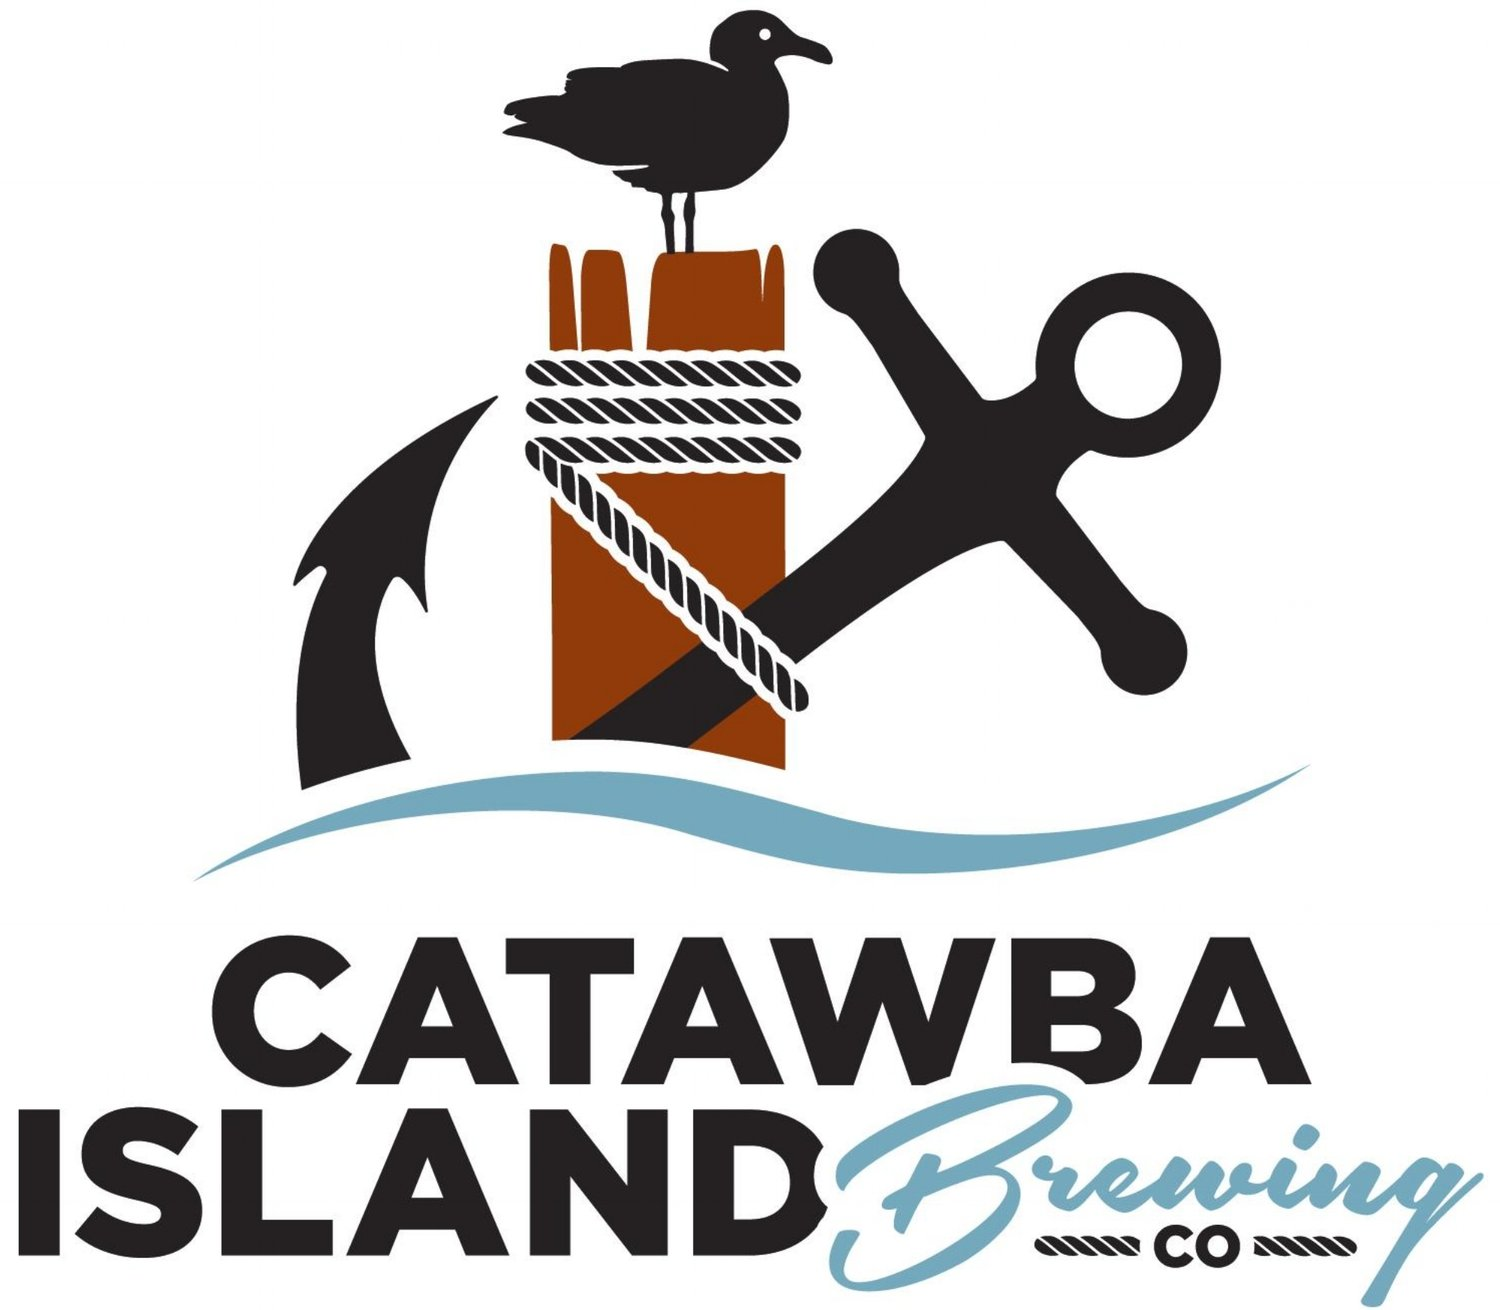 Catawba Island Brewing Co. -Home